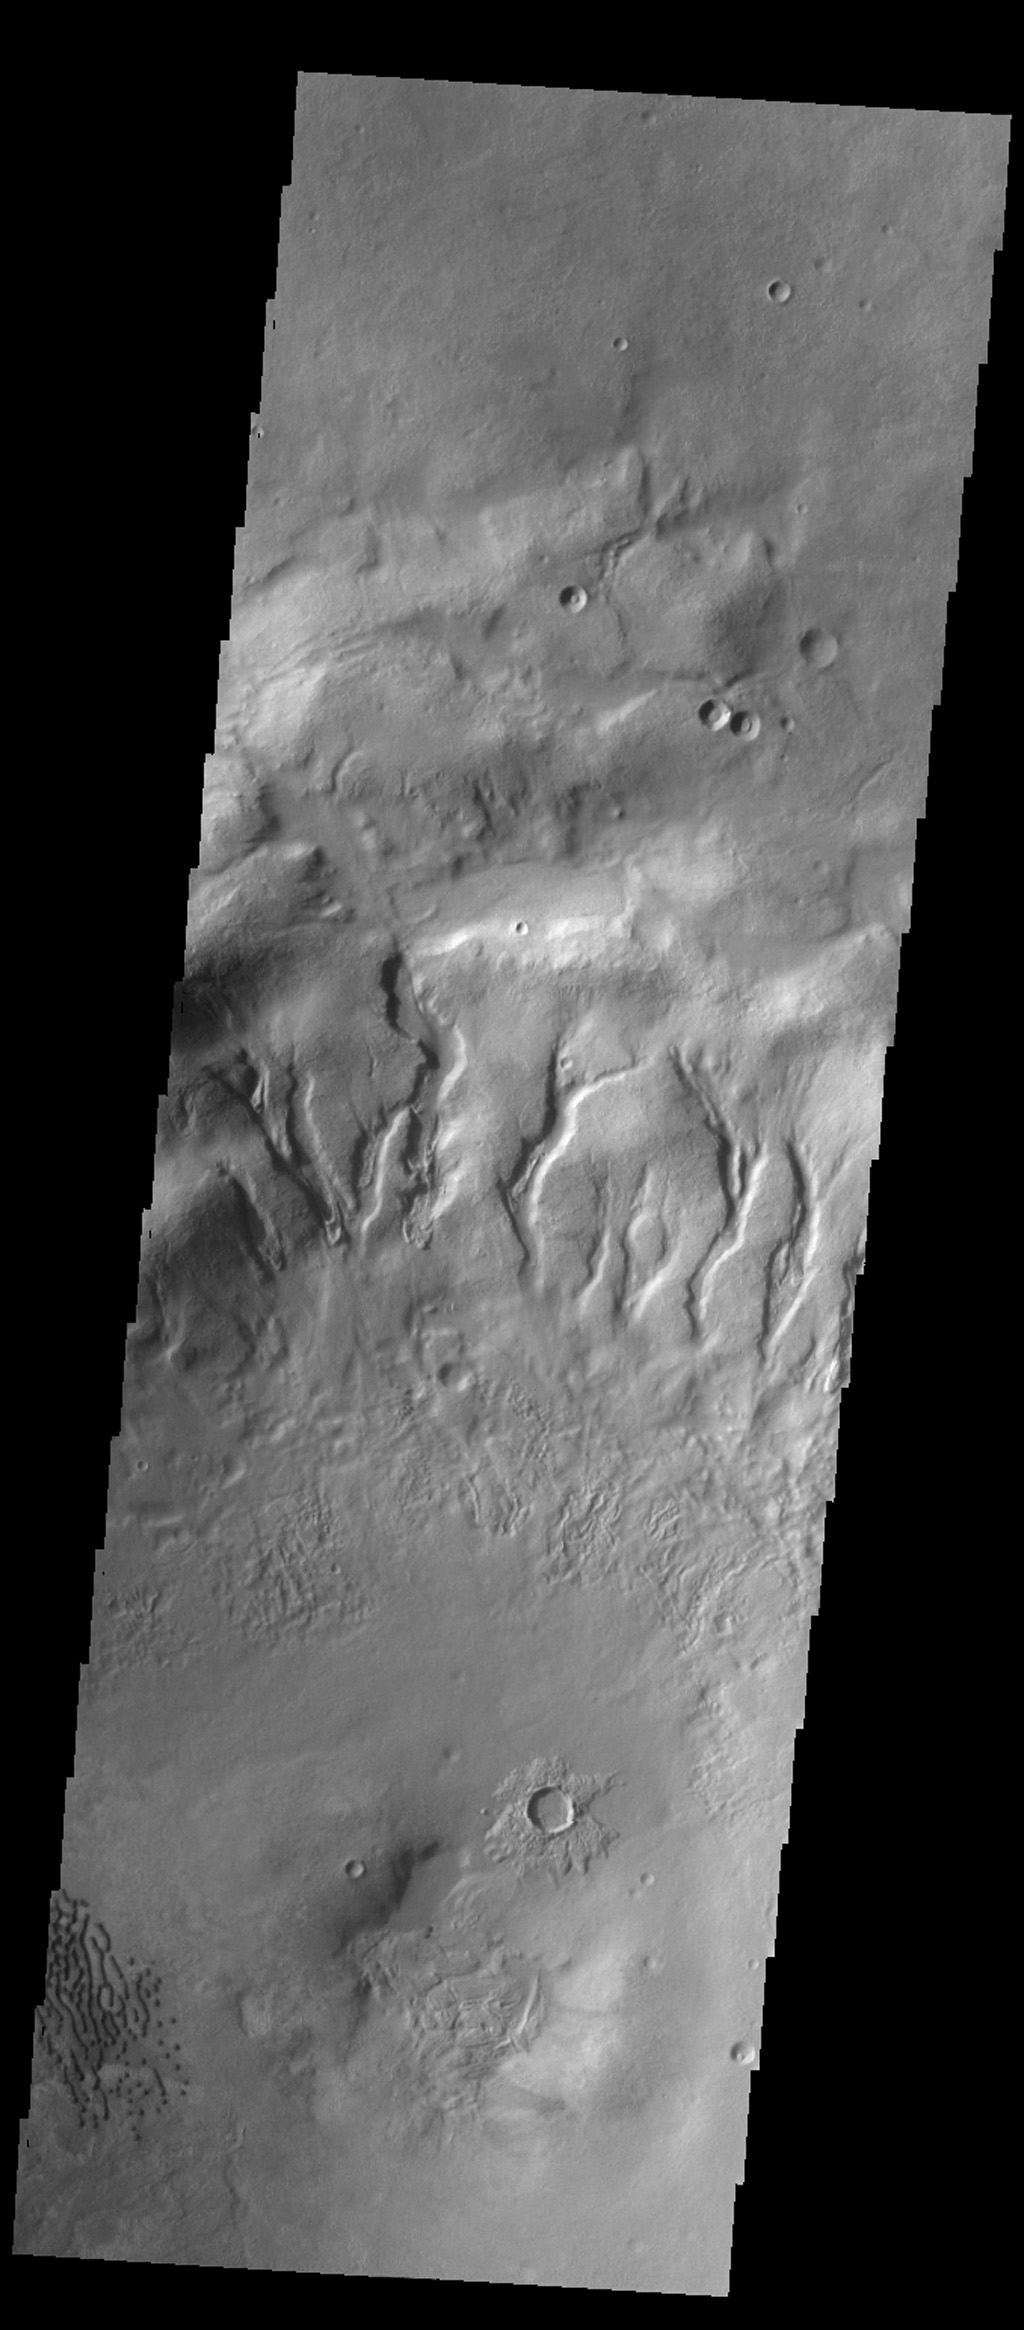 Many gullies are located on the northern rim of this unnamed crater in Noachis Terra as seen by NASA's 2001 Mars Odyssey spacecraft. Small dunes are located on the floor of the crater (lower left side of image).